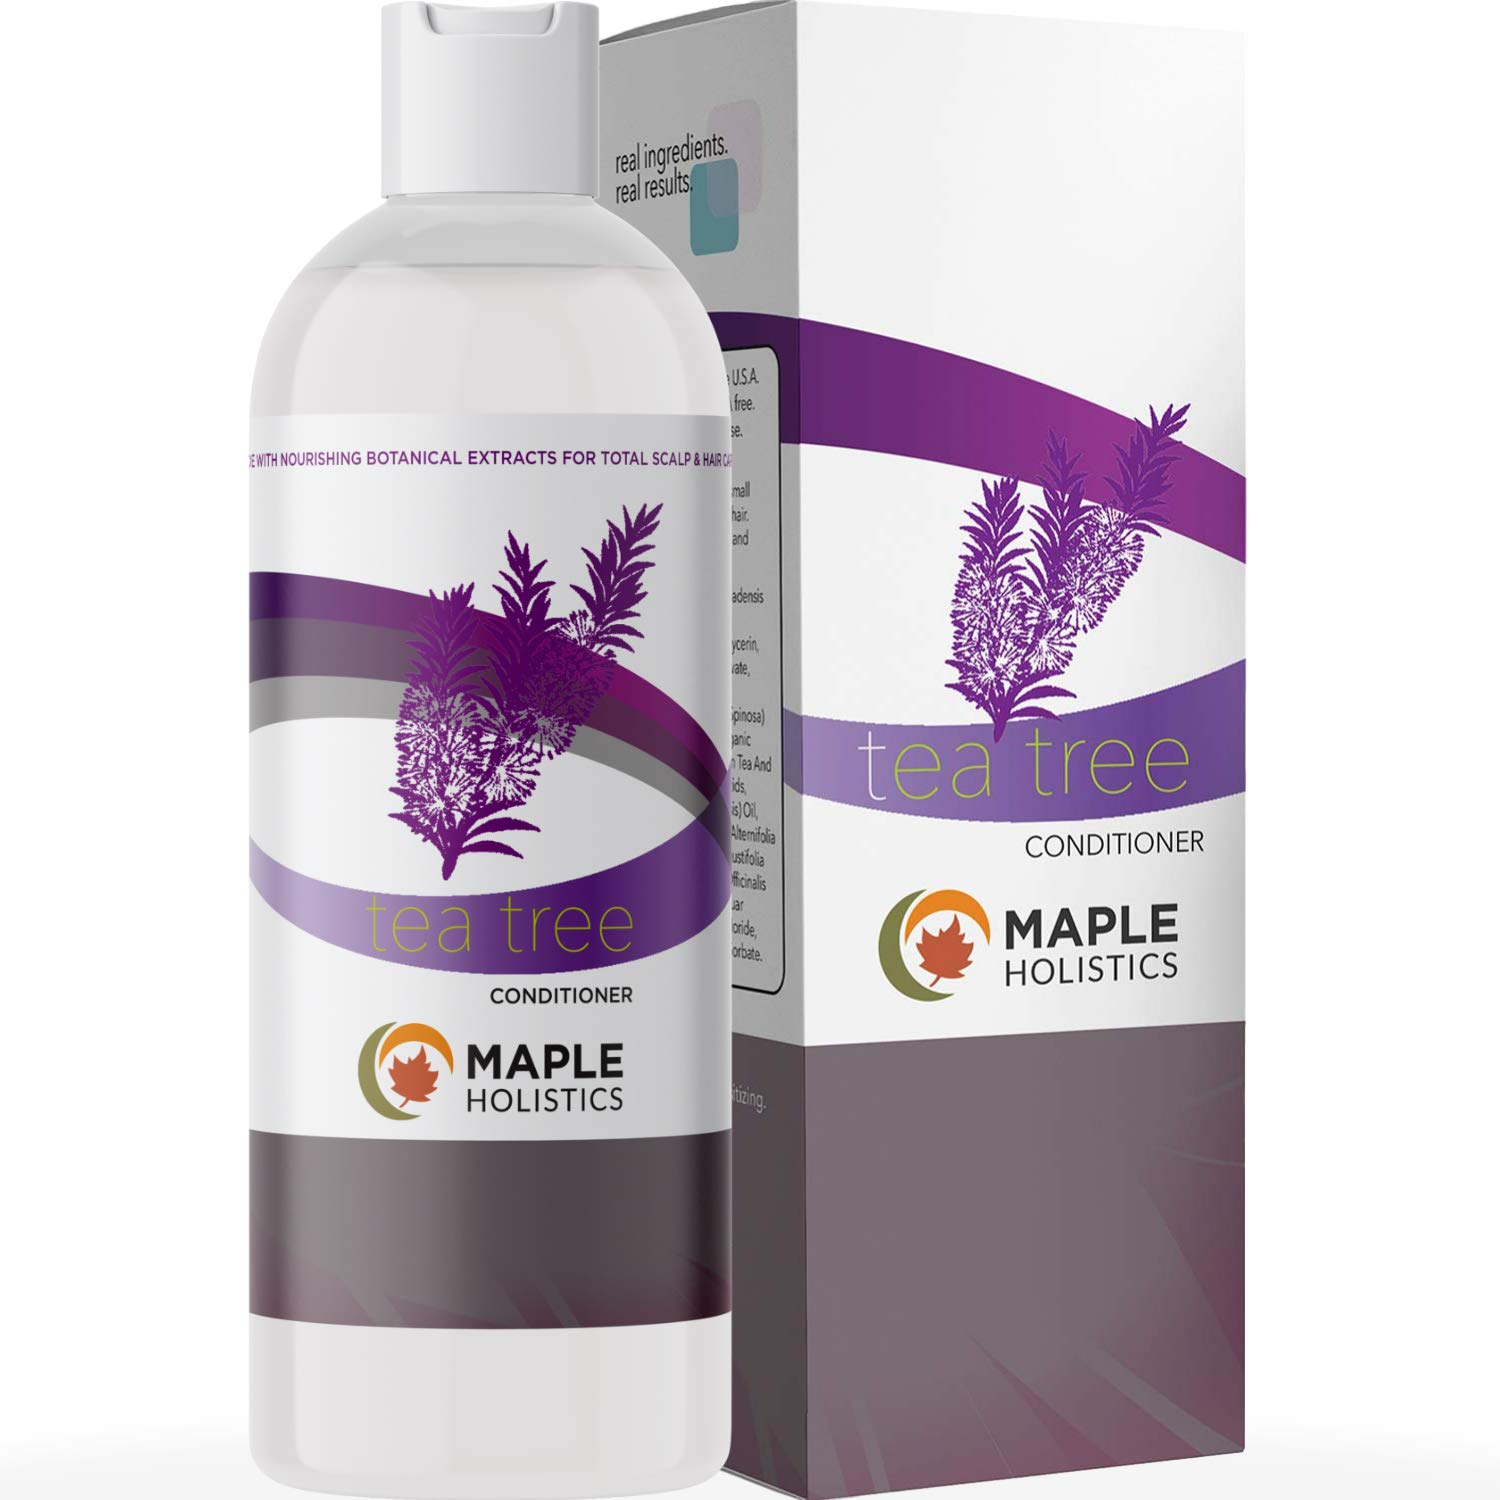 Tea Tree Oil Hair Conditioner Damaged For All stores are sold Deep Dry - overseas